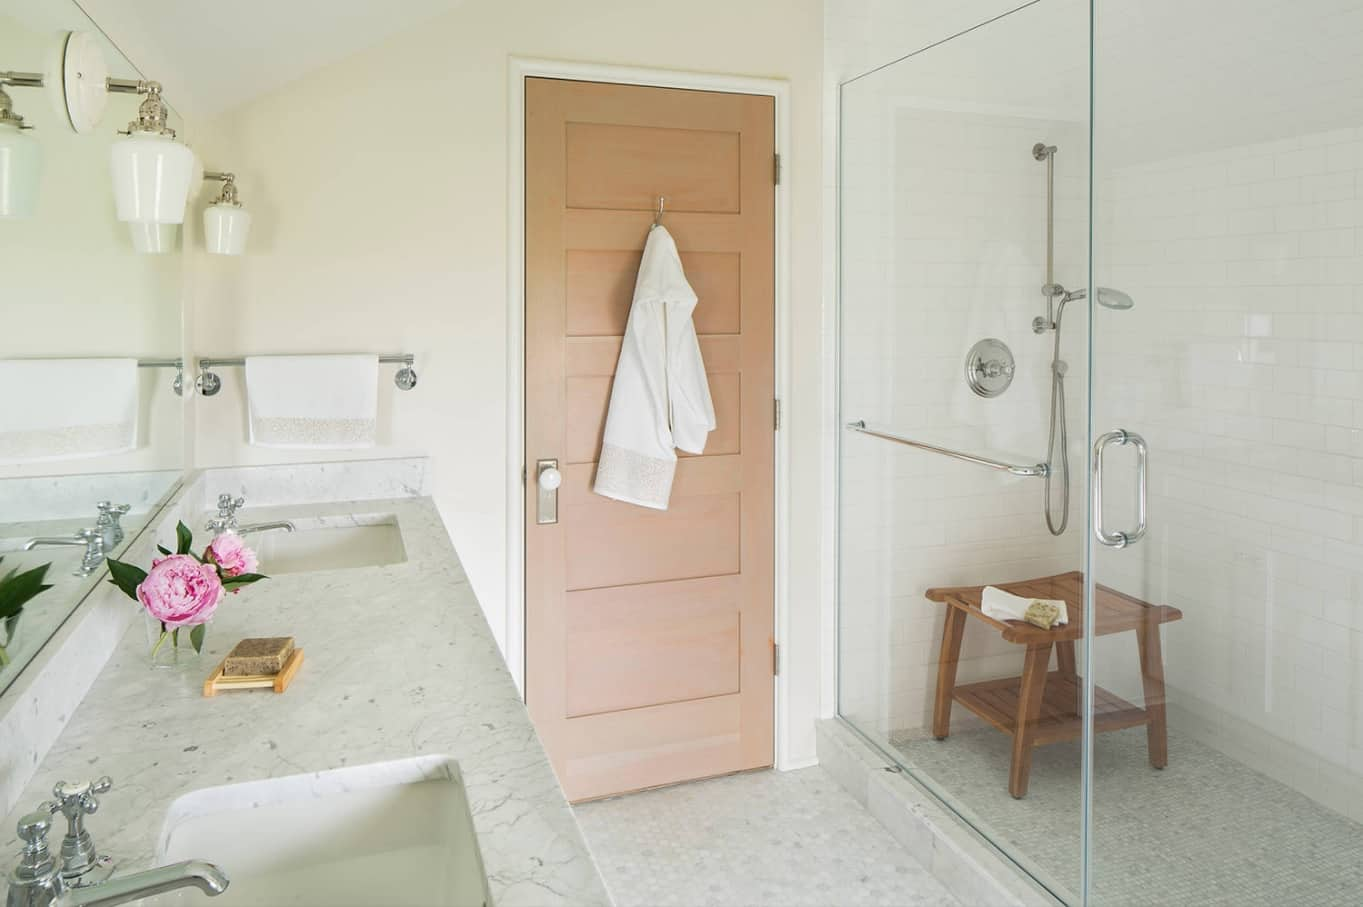 Making the Most of a Small Bathroom. Contemporary styled bathroom in pastel colors with wooden door